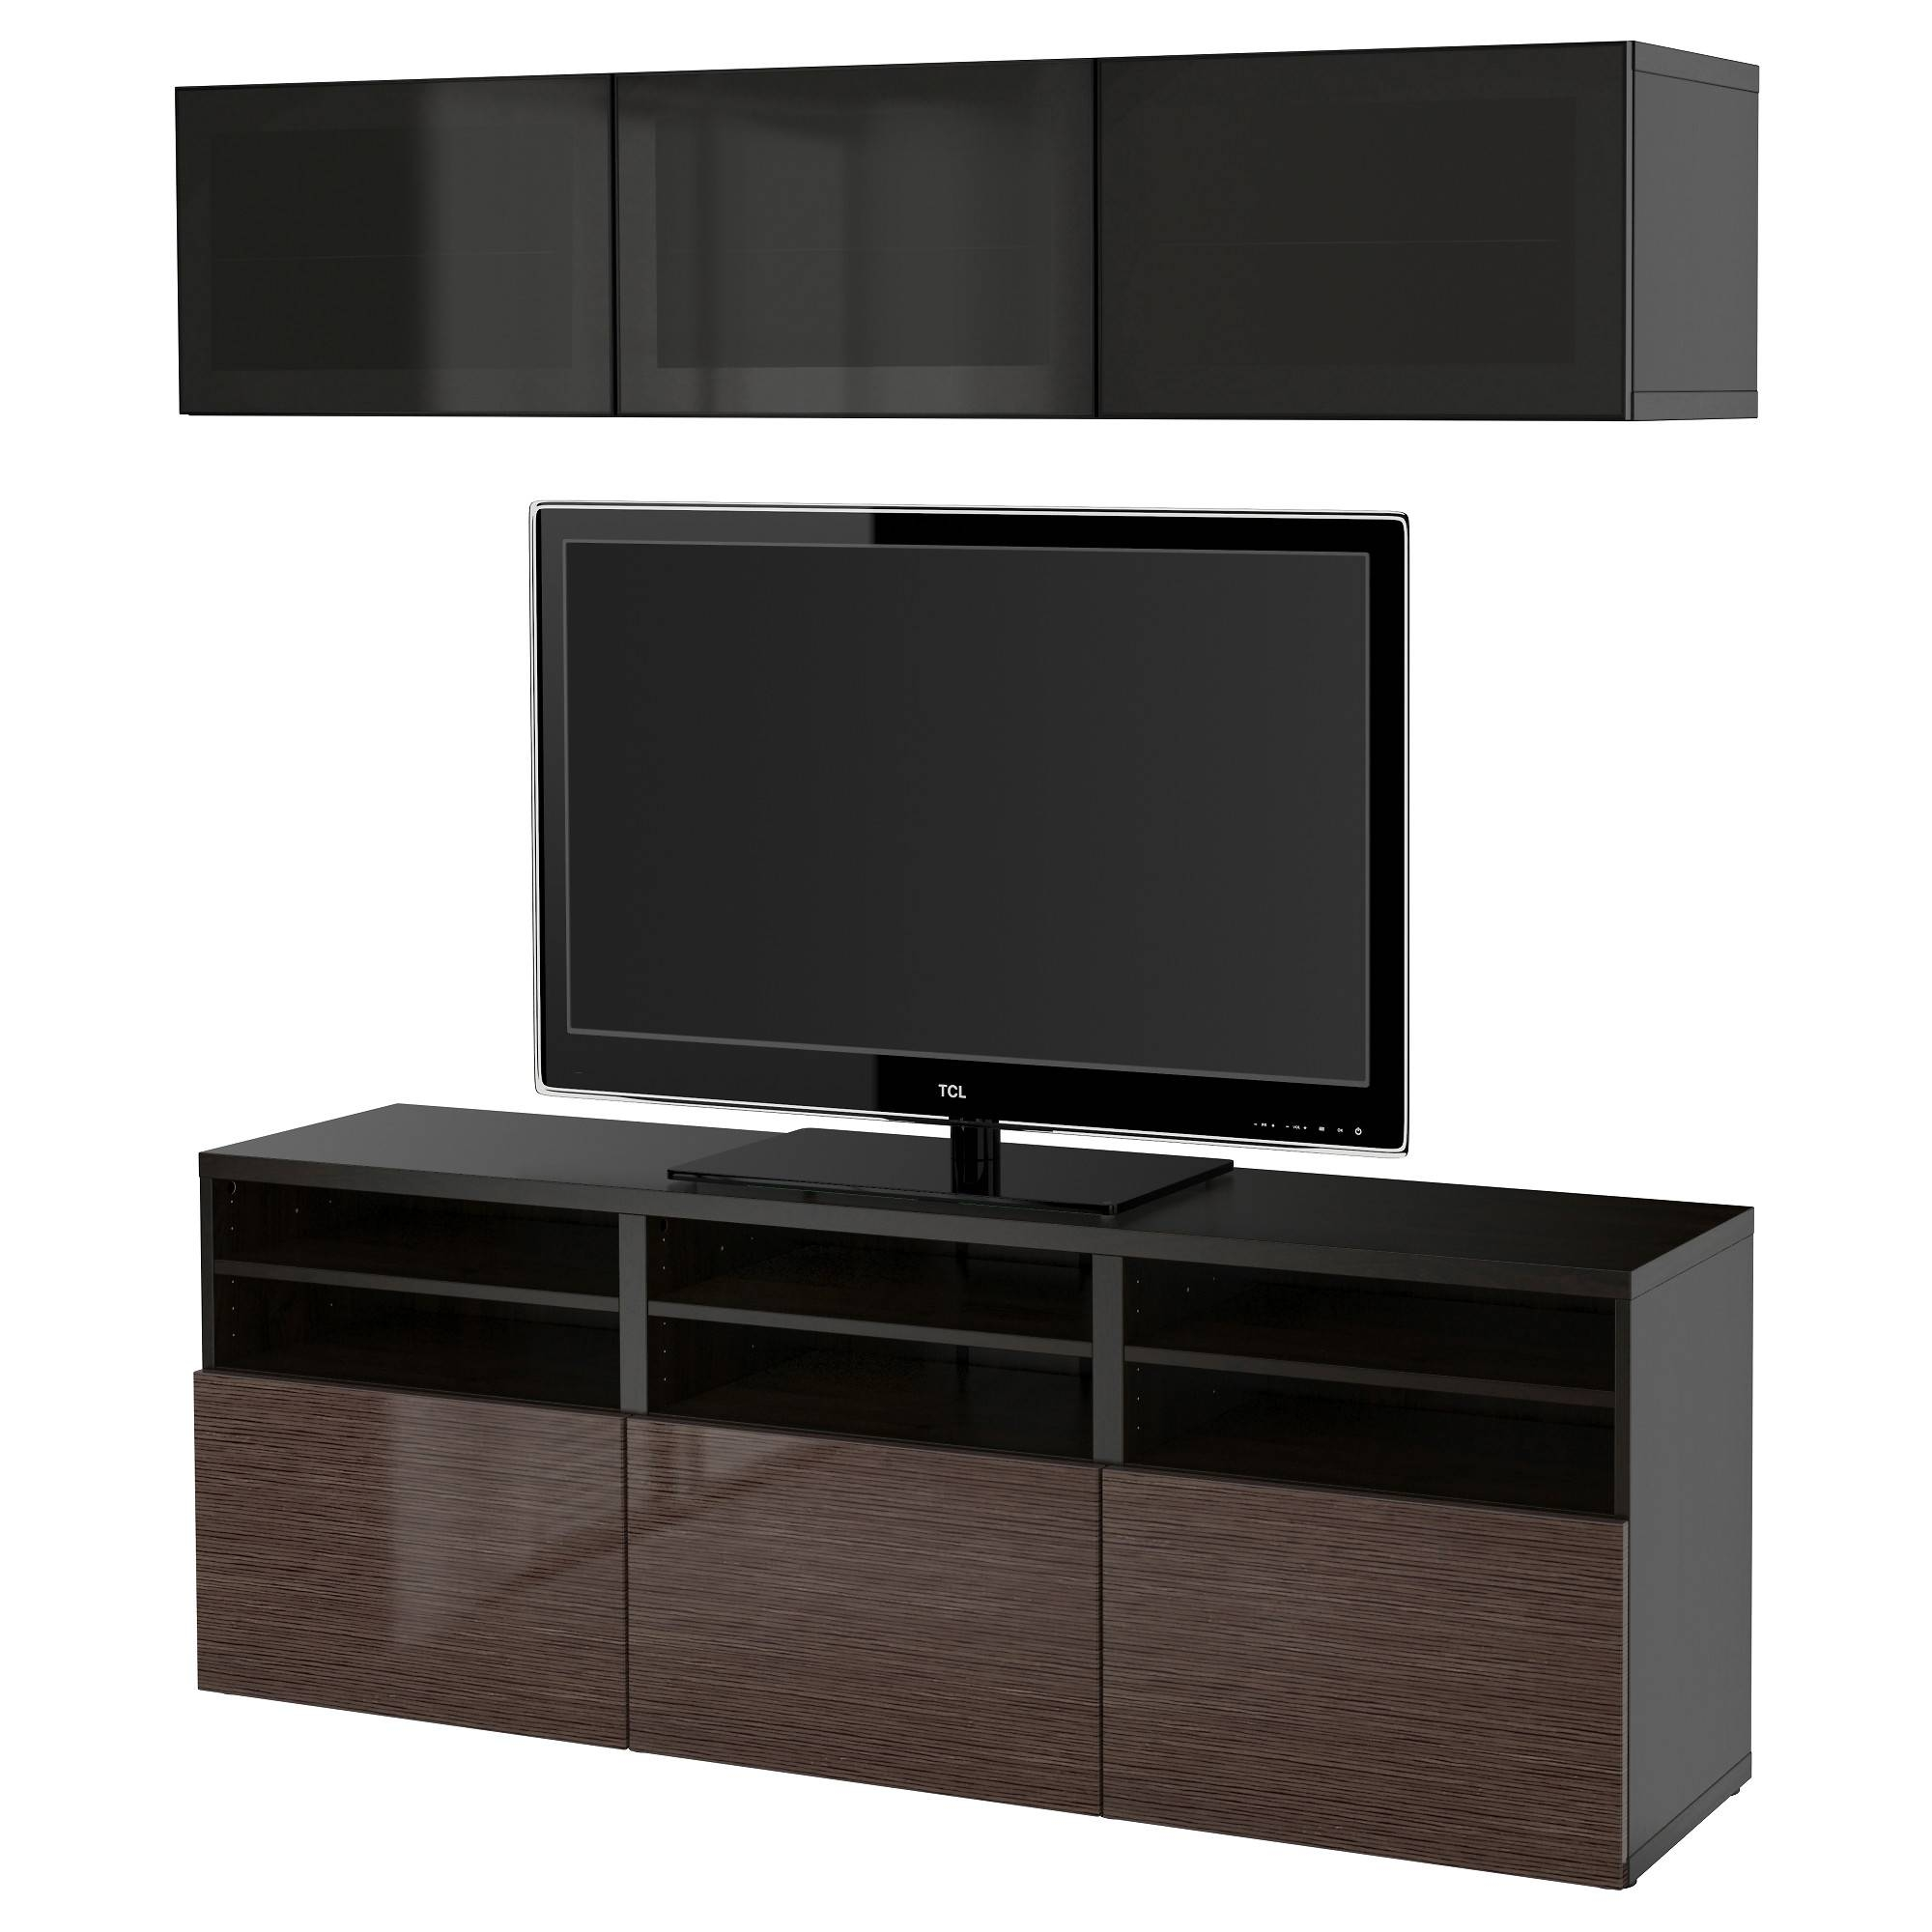 Bestå Tv Storage Combination/glass Doors Black Brown/selsviken With Smoked Glass Tv Stands (View 2 of 15)